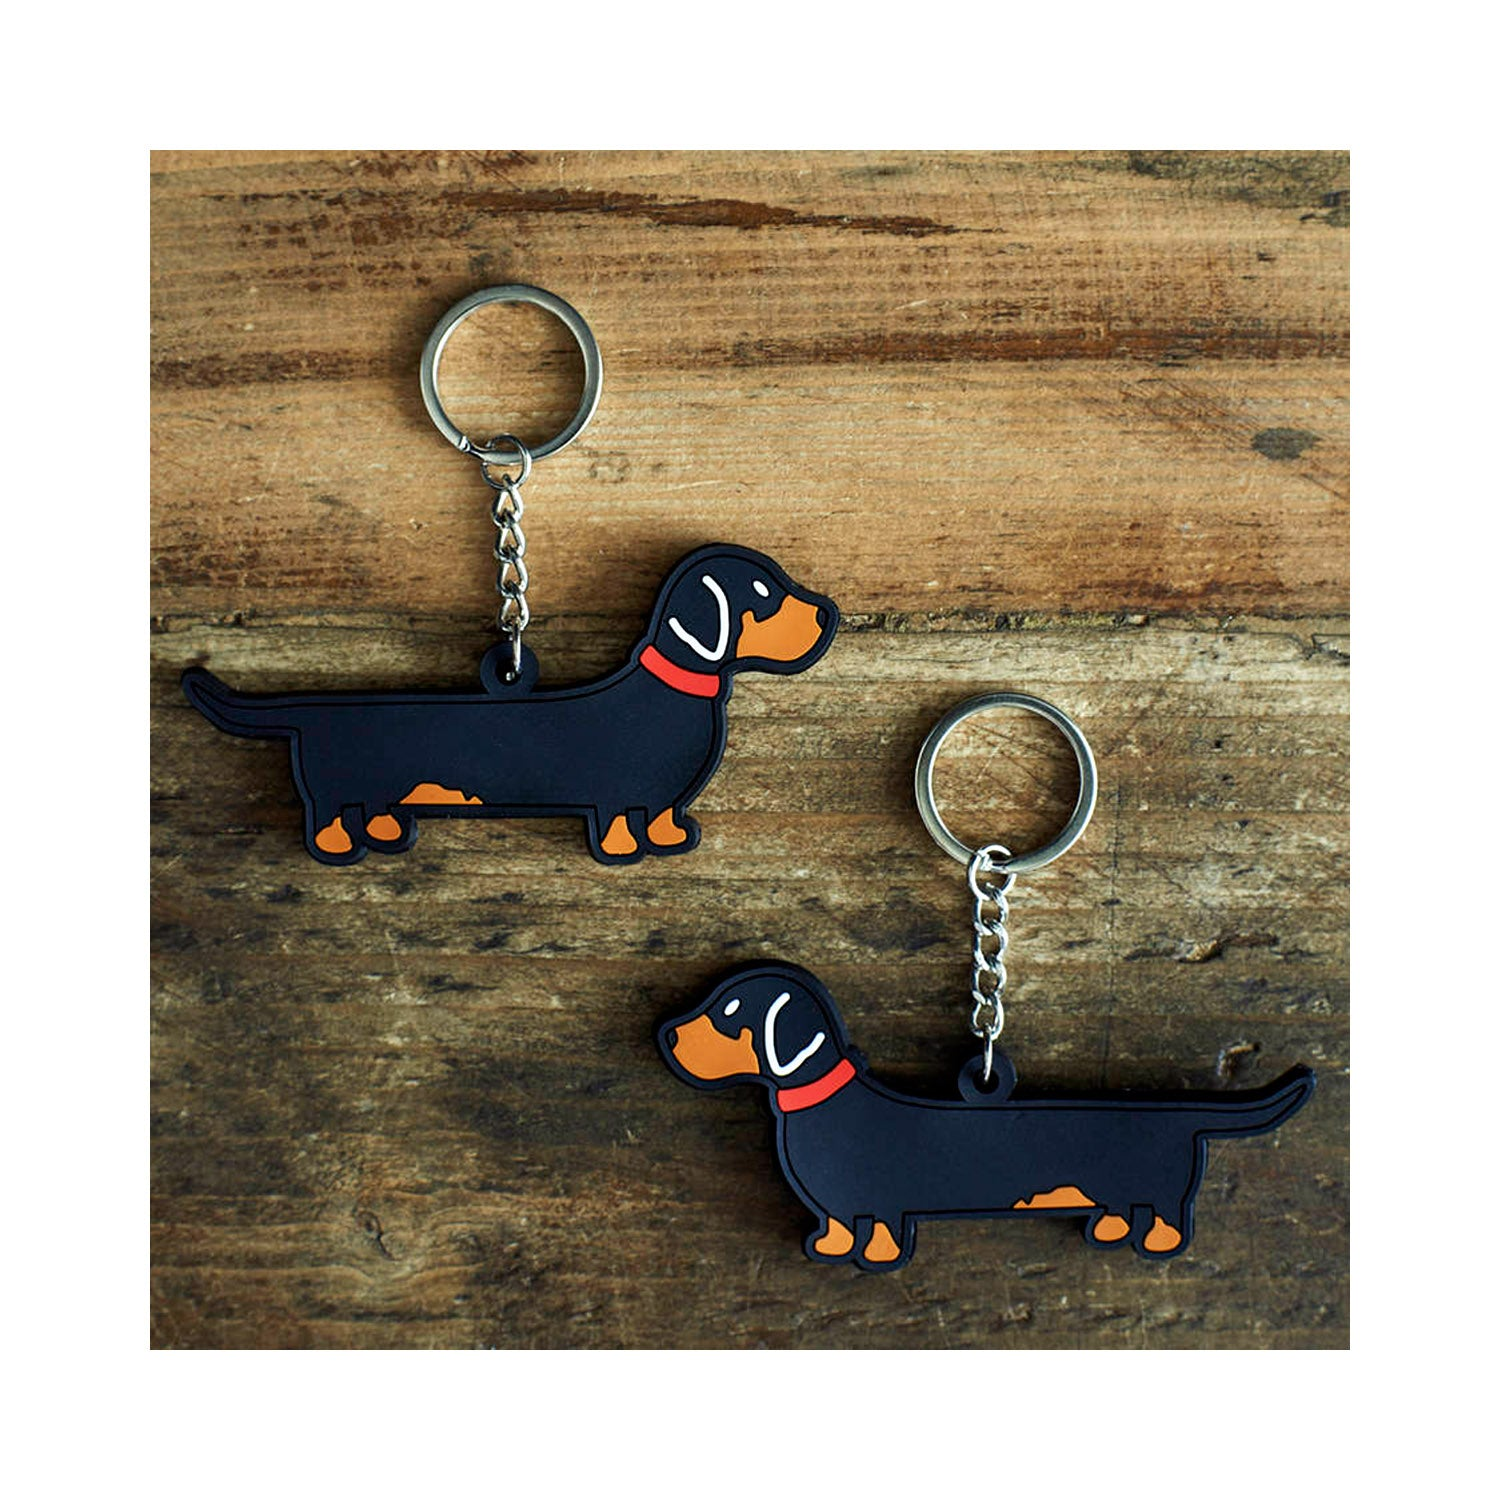 Dog Lover Gifts available at Dog Krazy Gifts - Florence The Dachshund Keyring- part of the Sweet William range available from Dog Krazy Gifts